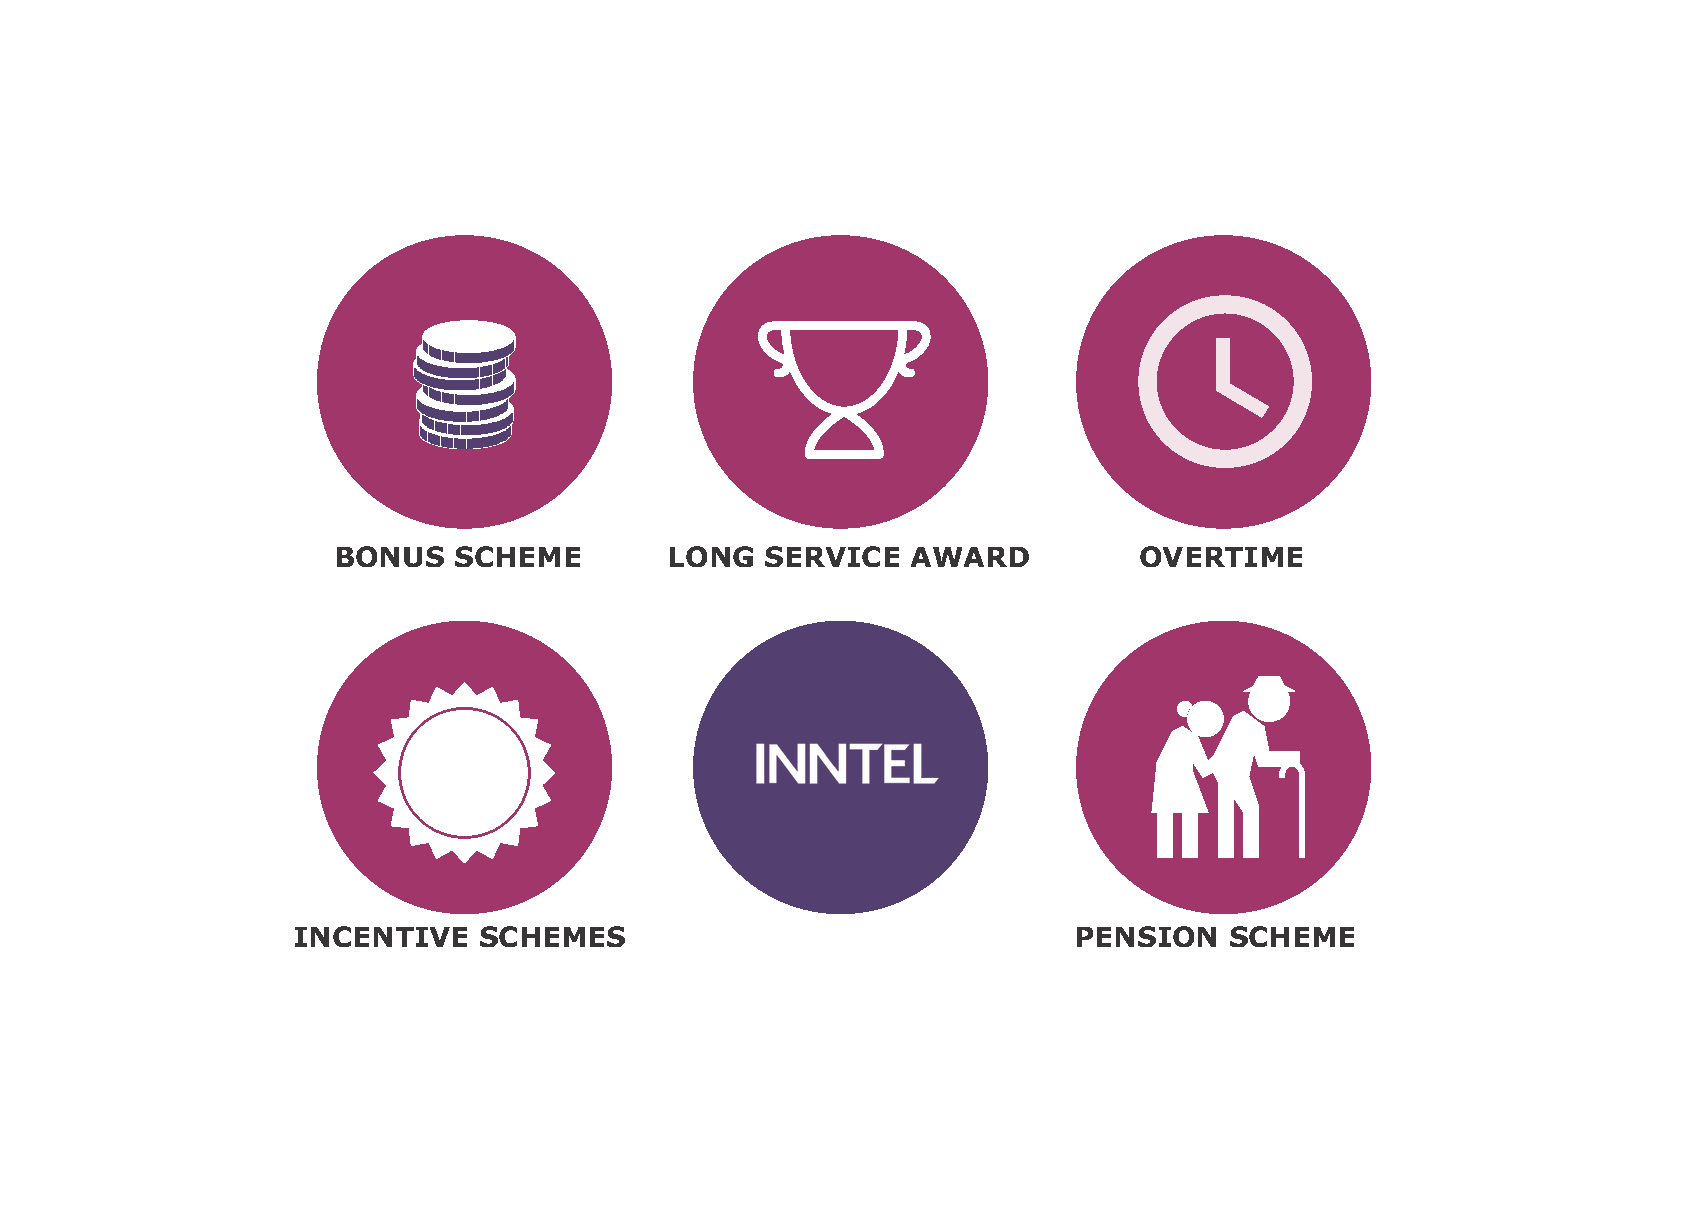 Selection of Inntel staff benefits